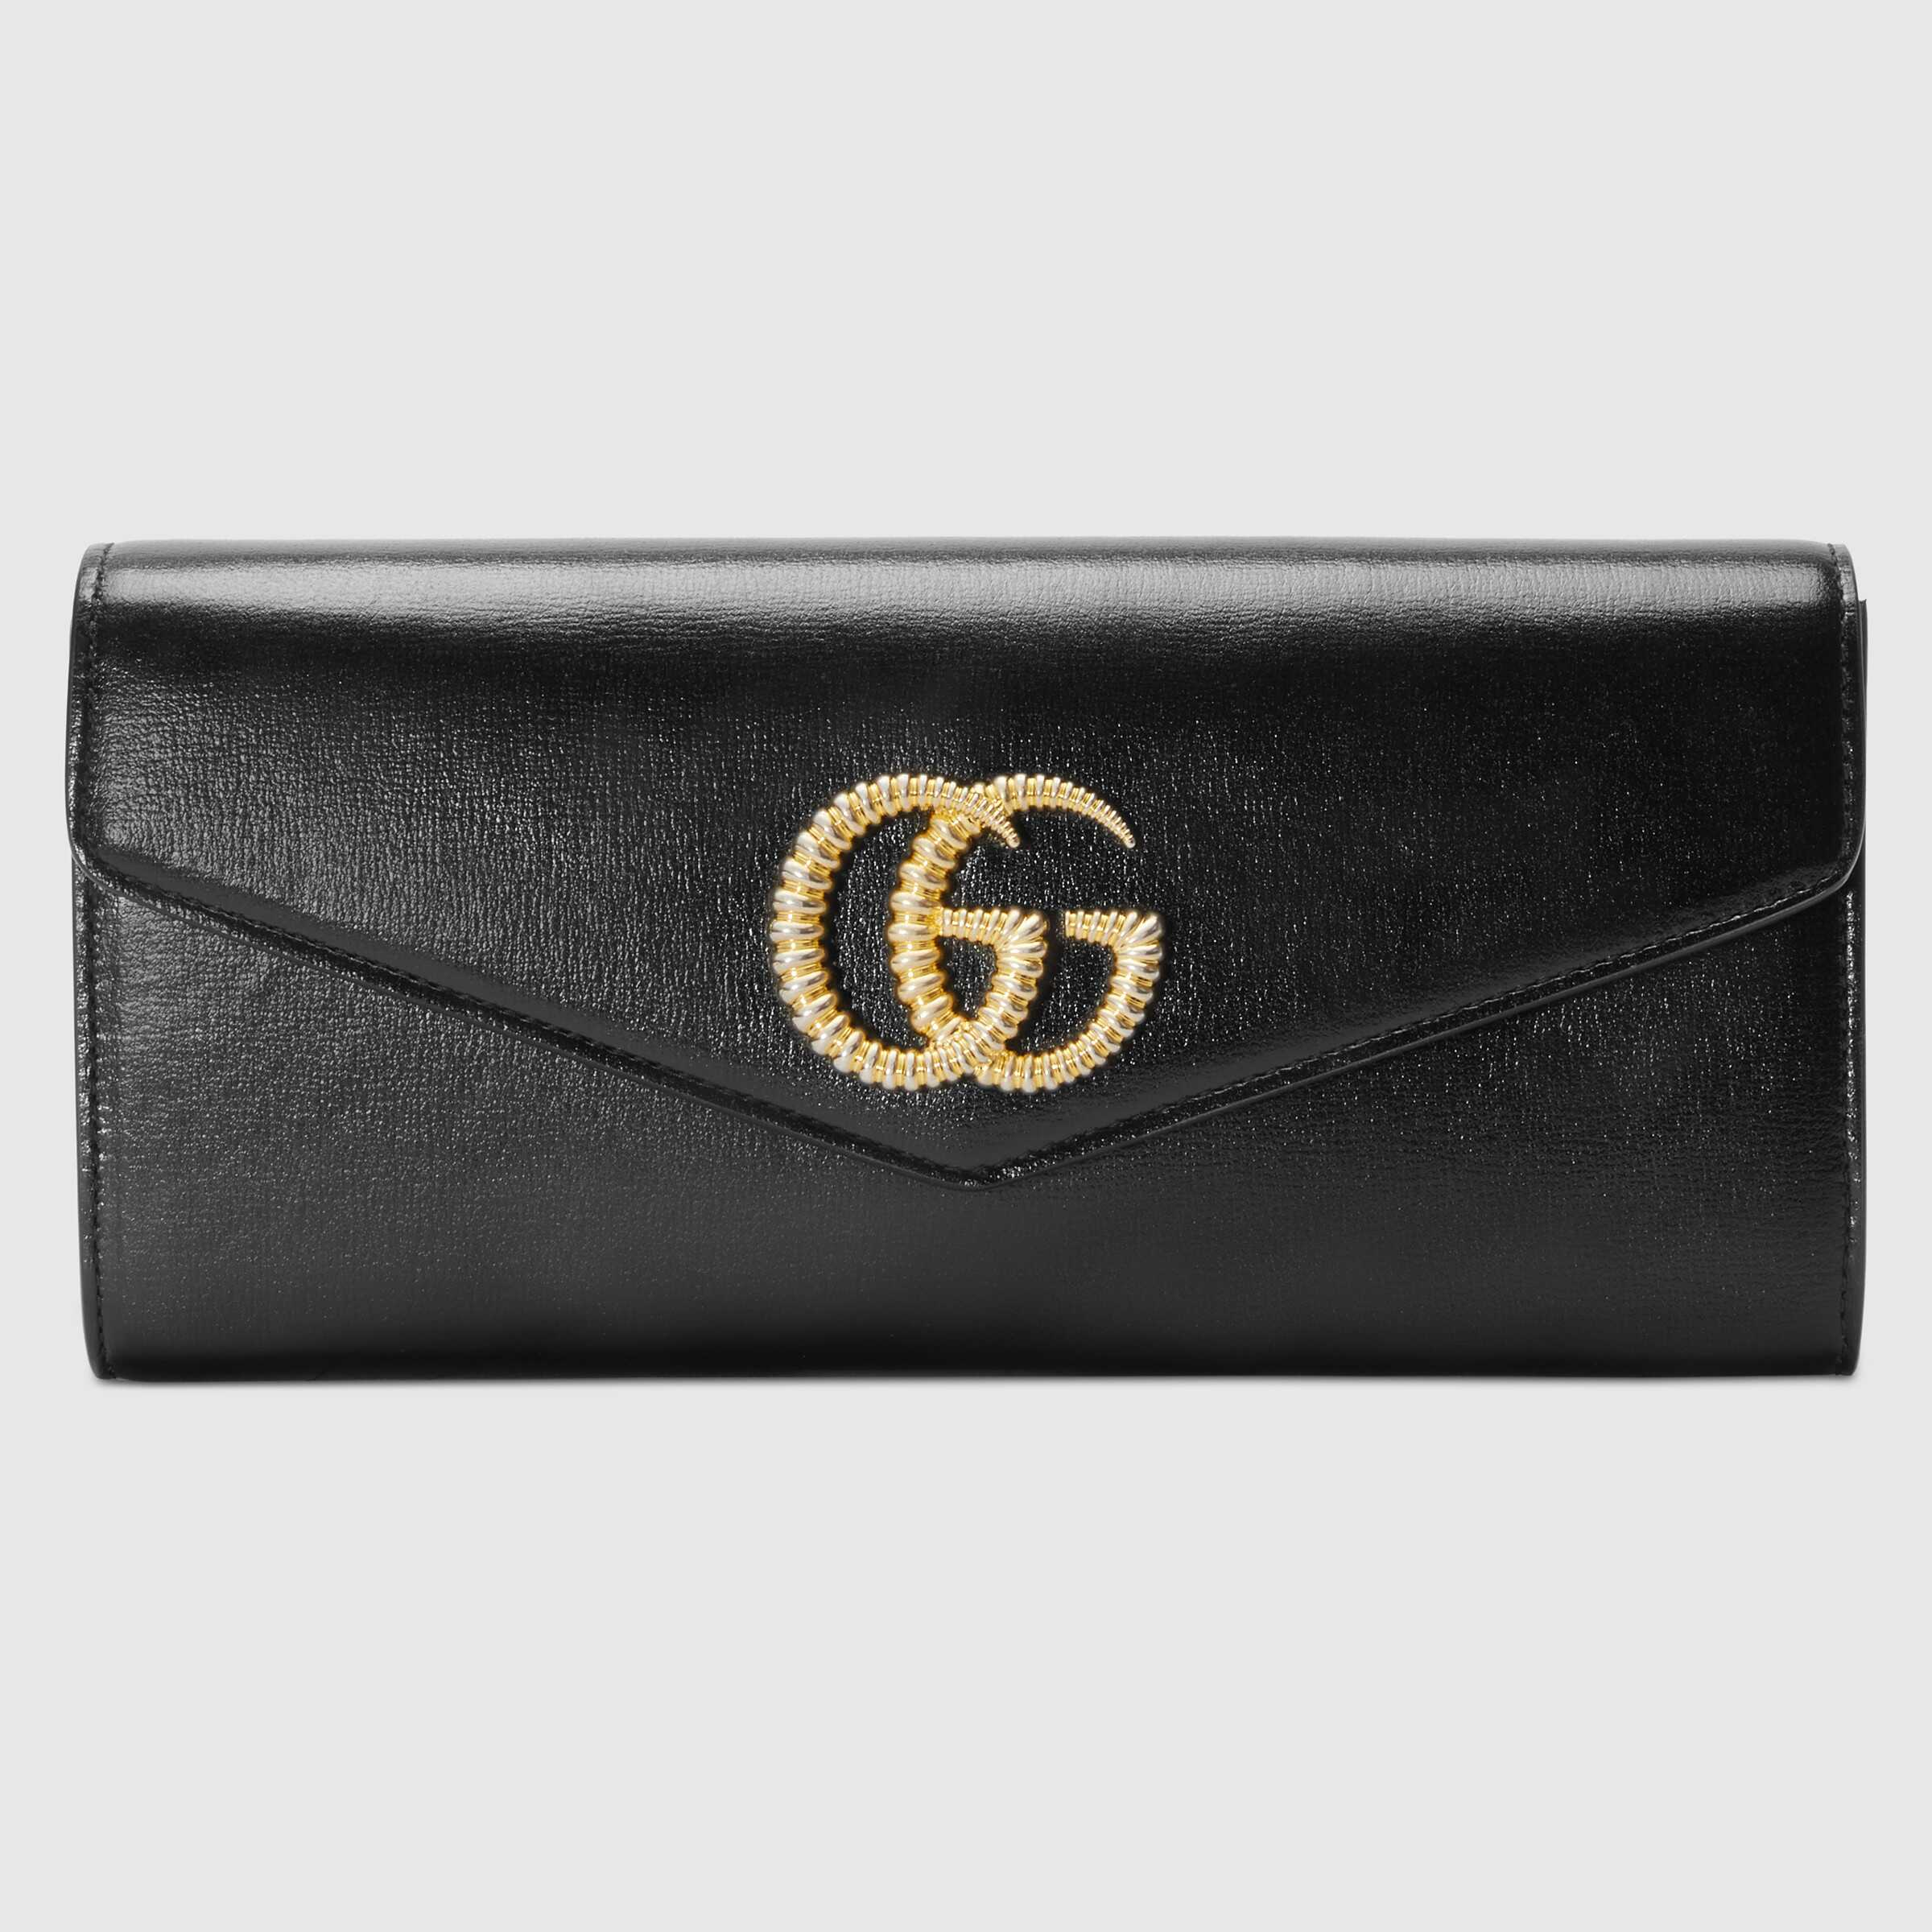 유럽직배송 구찌 클러치 GUCCI Broadway leather clutch with Double G 5941011DB0G1000